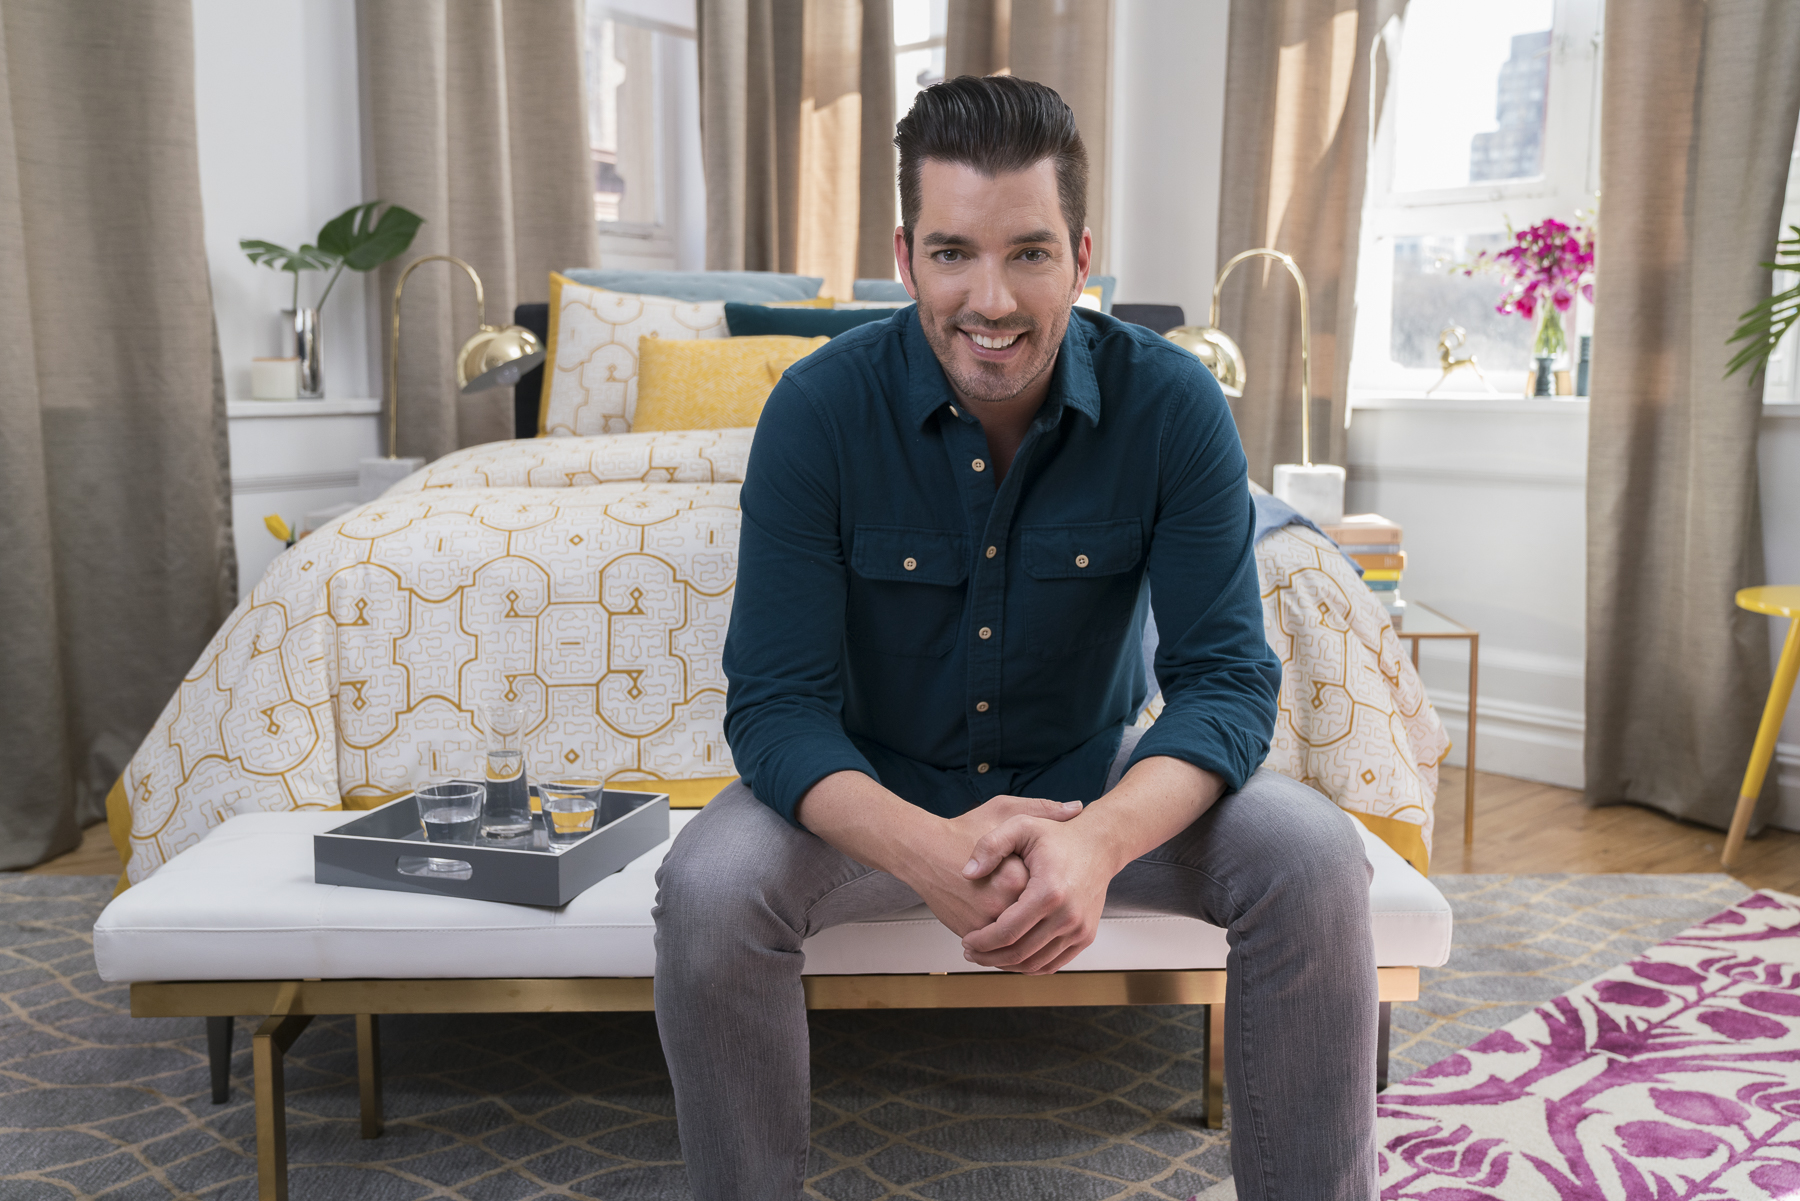 Stearns & Foster and Jonathan Scott, one of television's most recognized home design experts, are teaming up again to bring inspired bedroom designs to consumers who have an eye for luxurious and trend-forward designs.